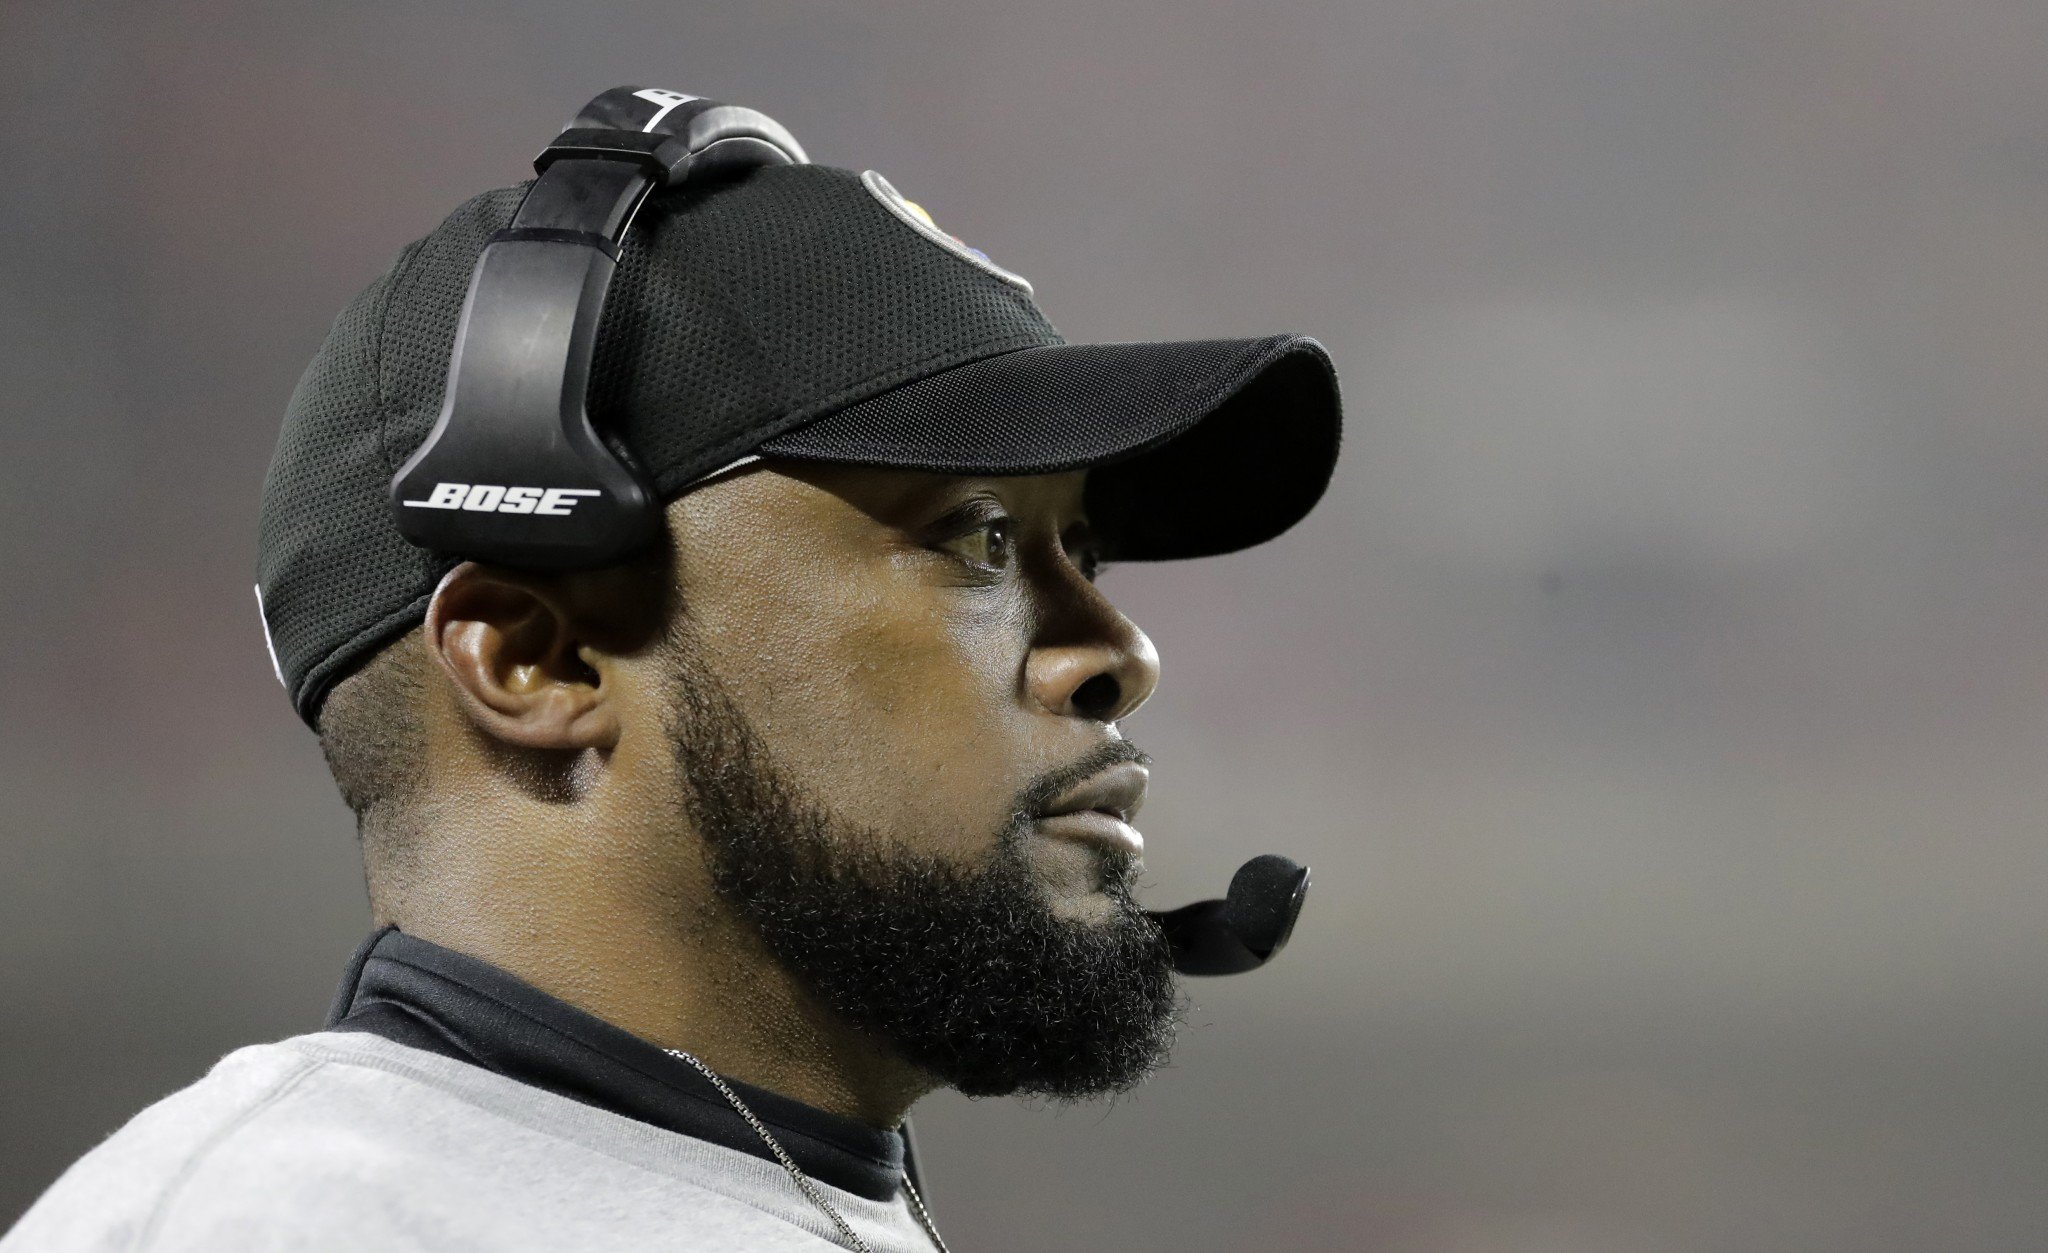 Mike Tomlin curses out Patriots while Antonio Brown broadcasts it live